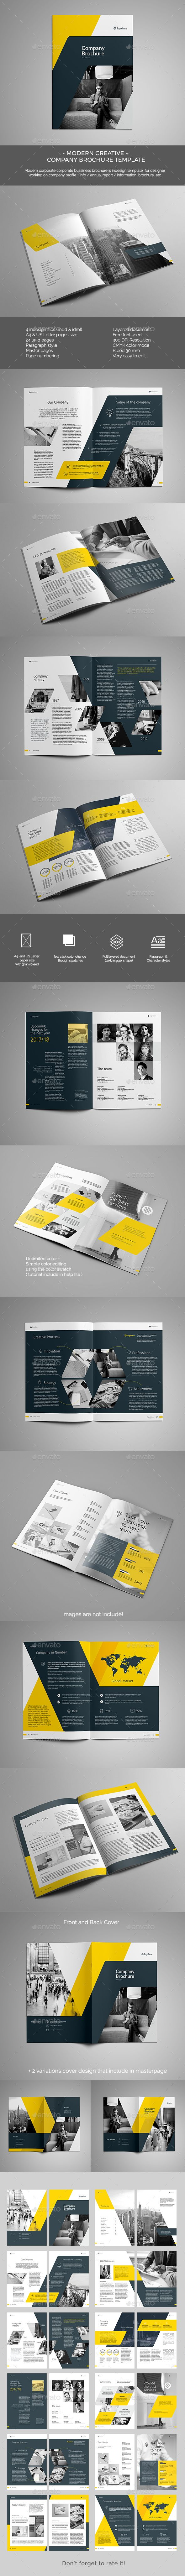 The Brochure Template InDesign INDD. Download here: http://graphicriver.net/item/the-brochure/15996496?ref=ksioks